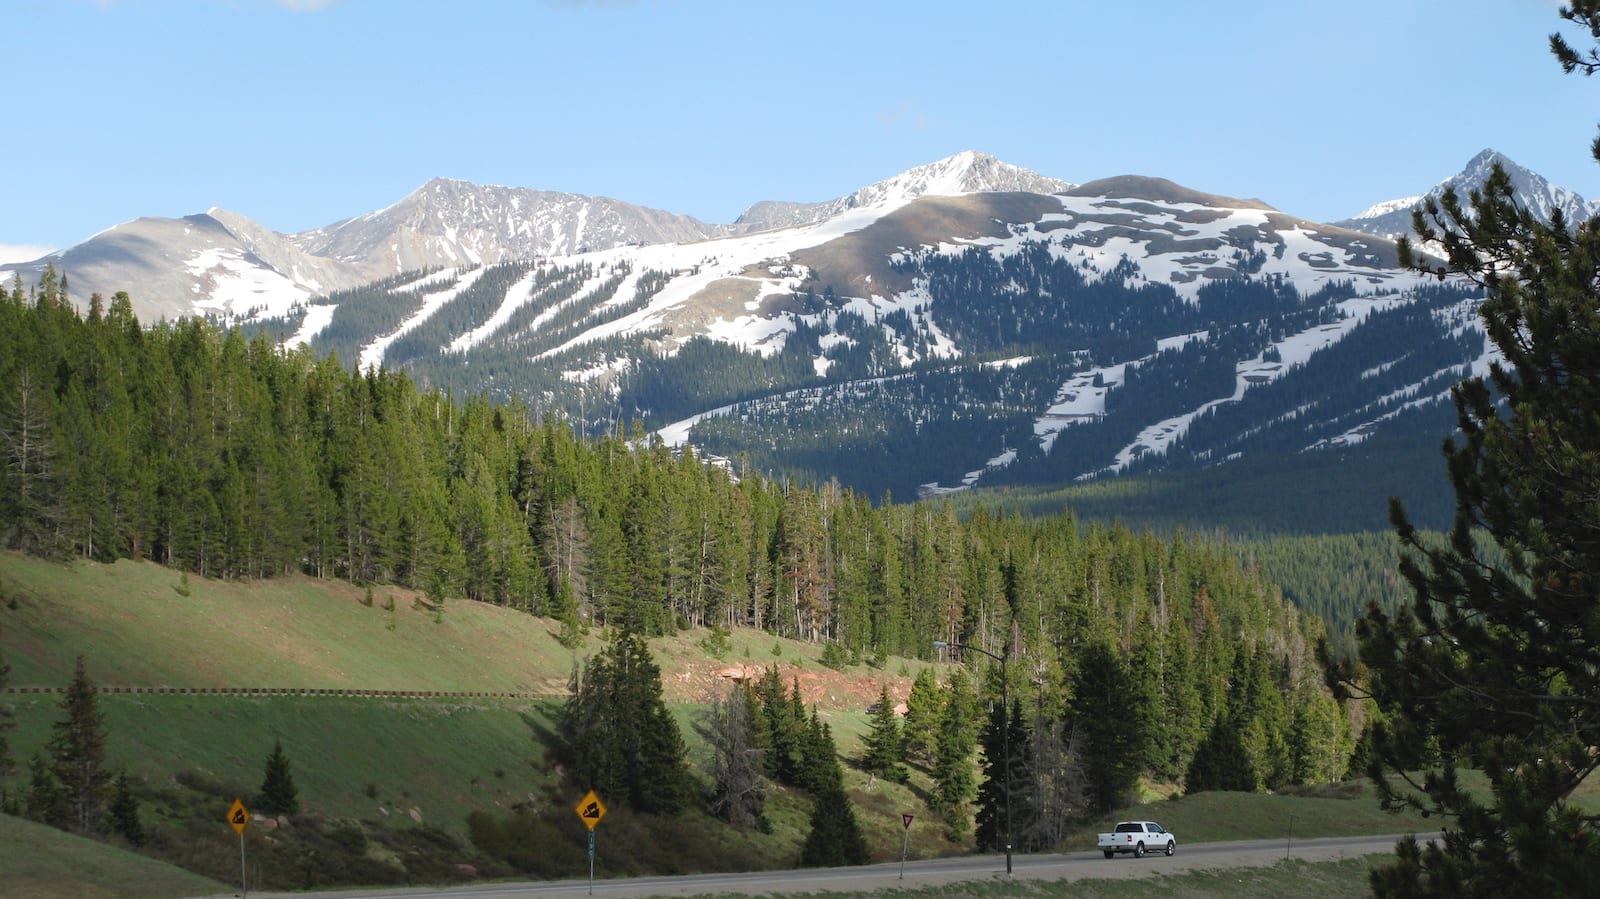 The view from Vail Pass, CO